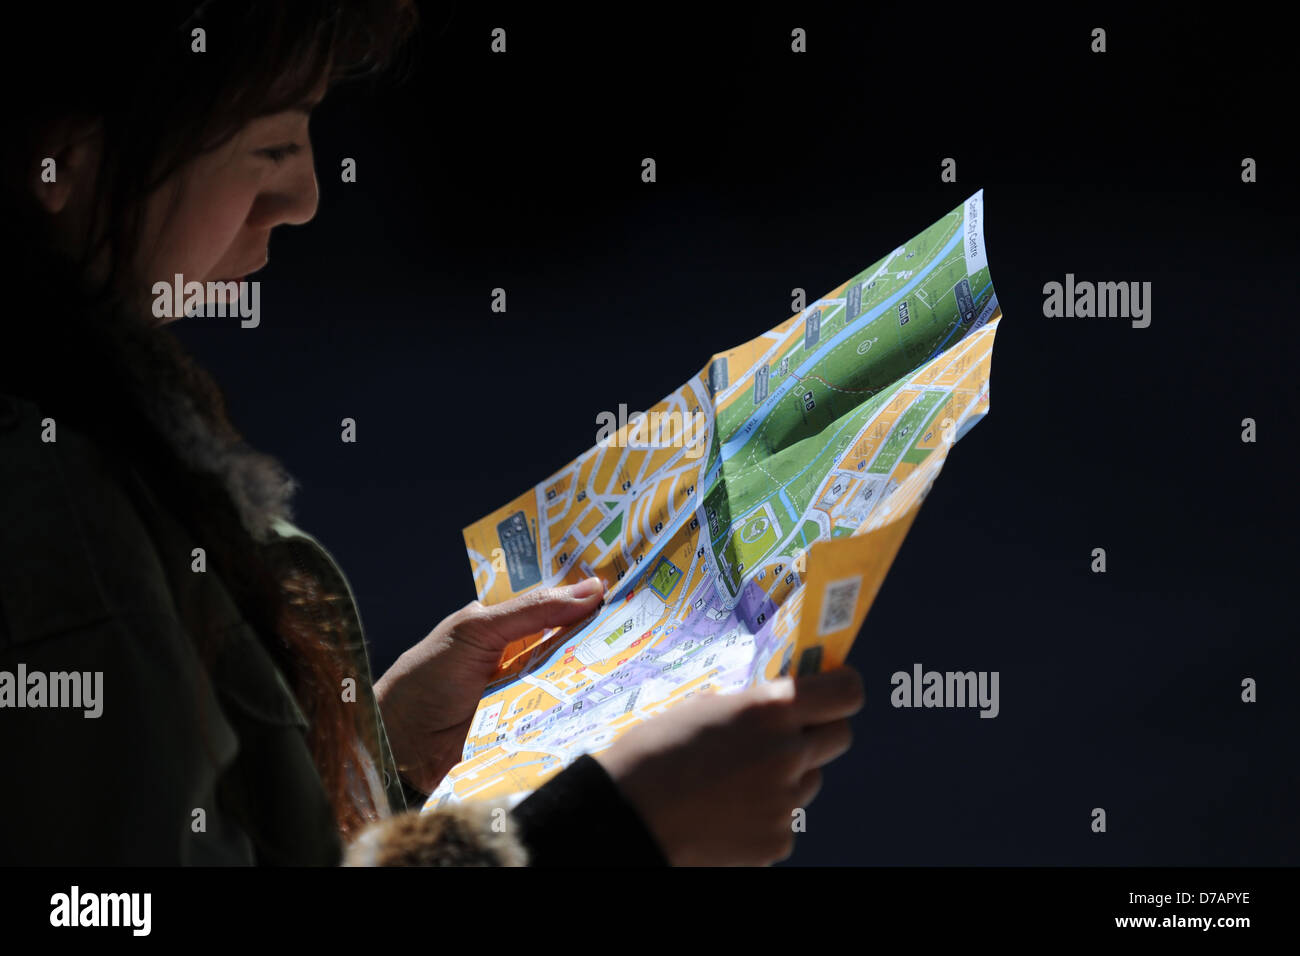 A tourist looks at a map of Cardiff. - Stock Image